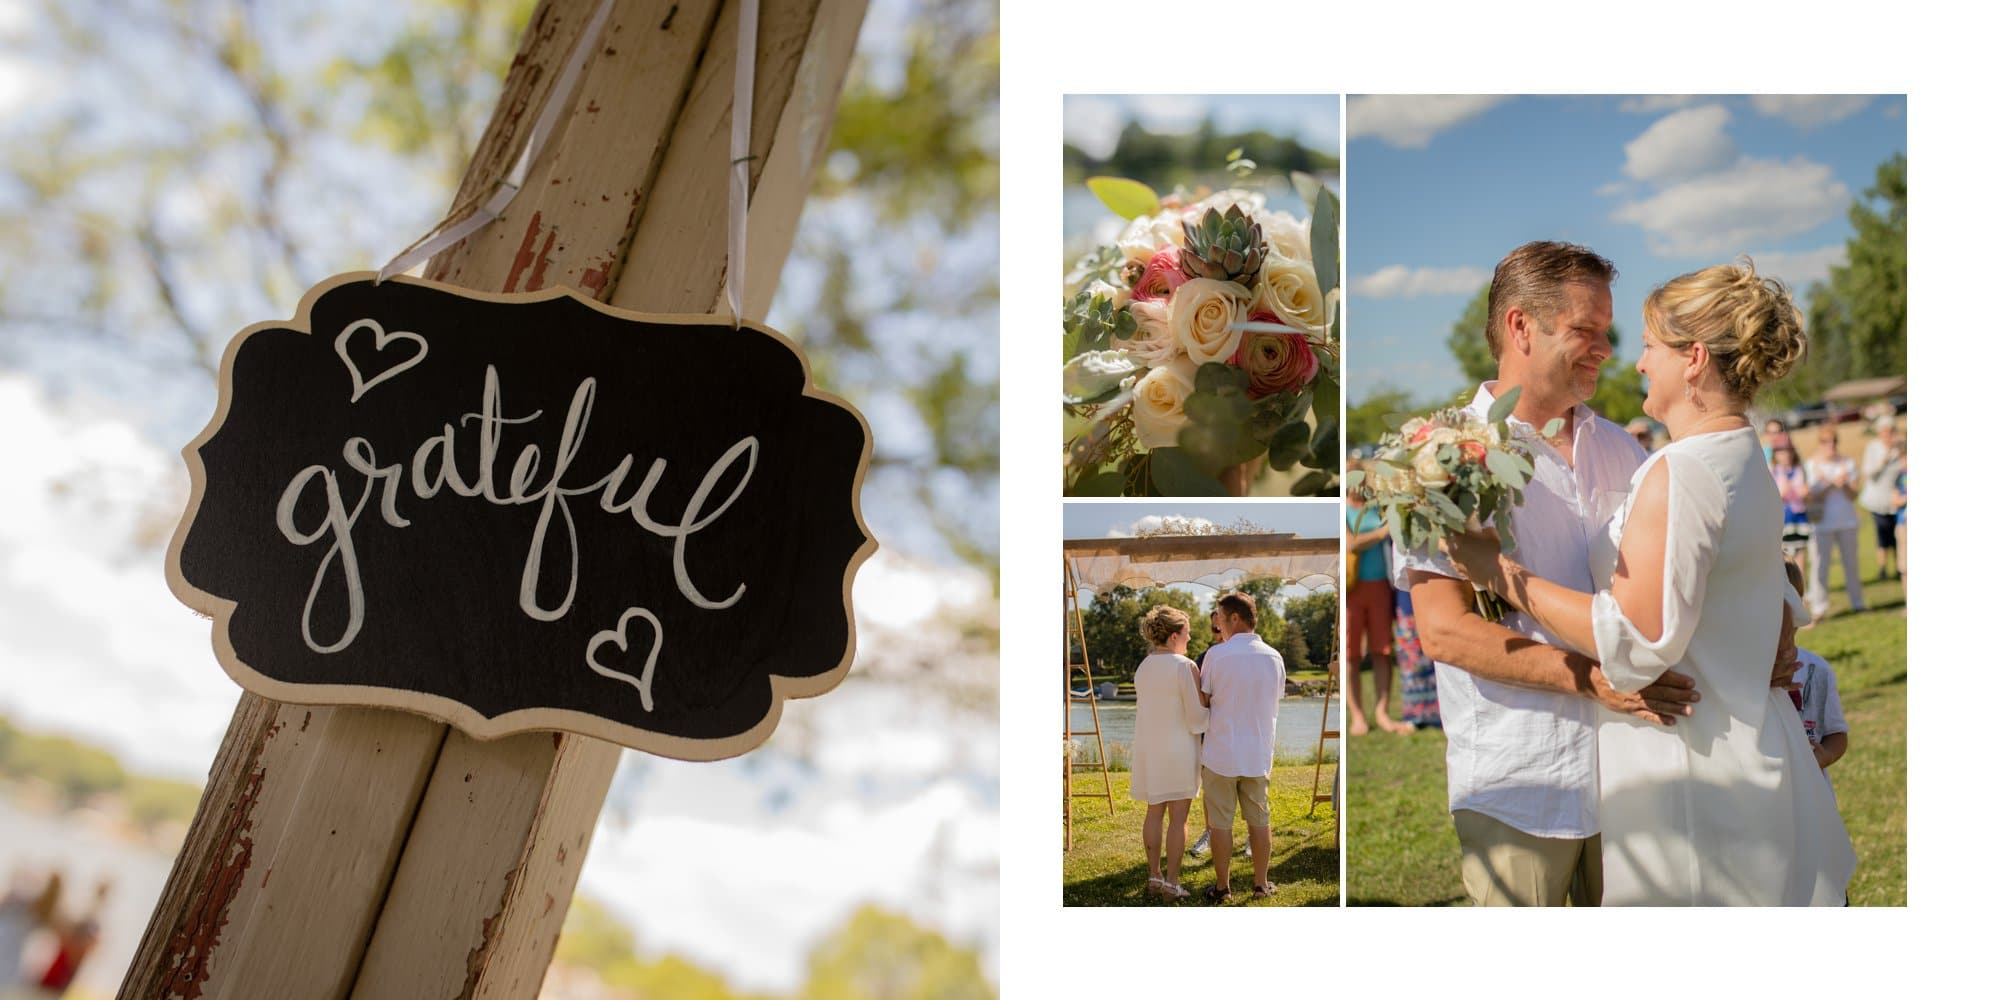 Outdoor Casual wedding photography